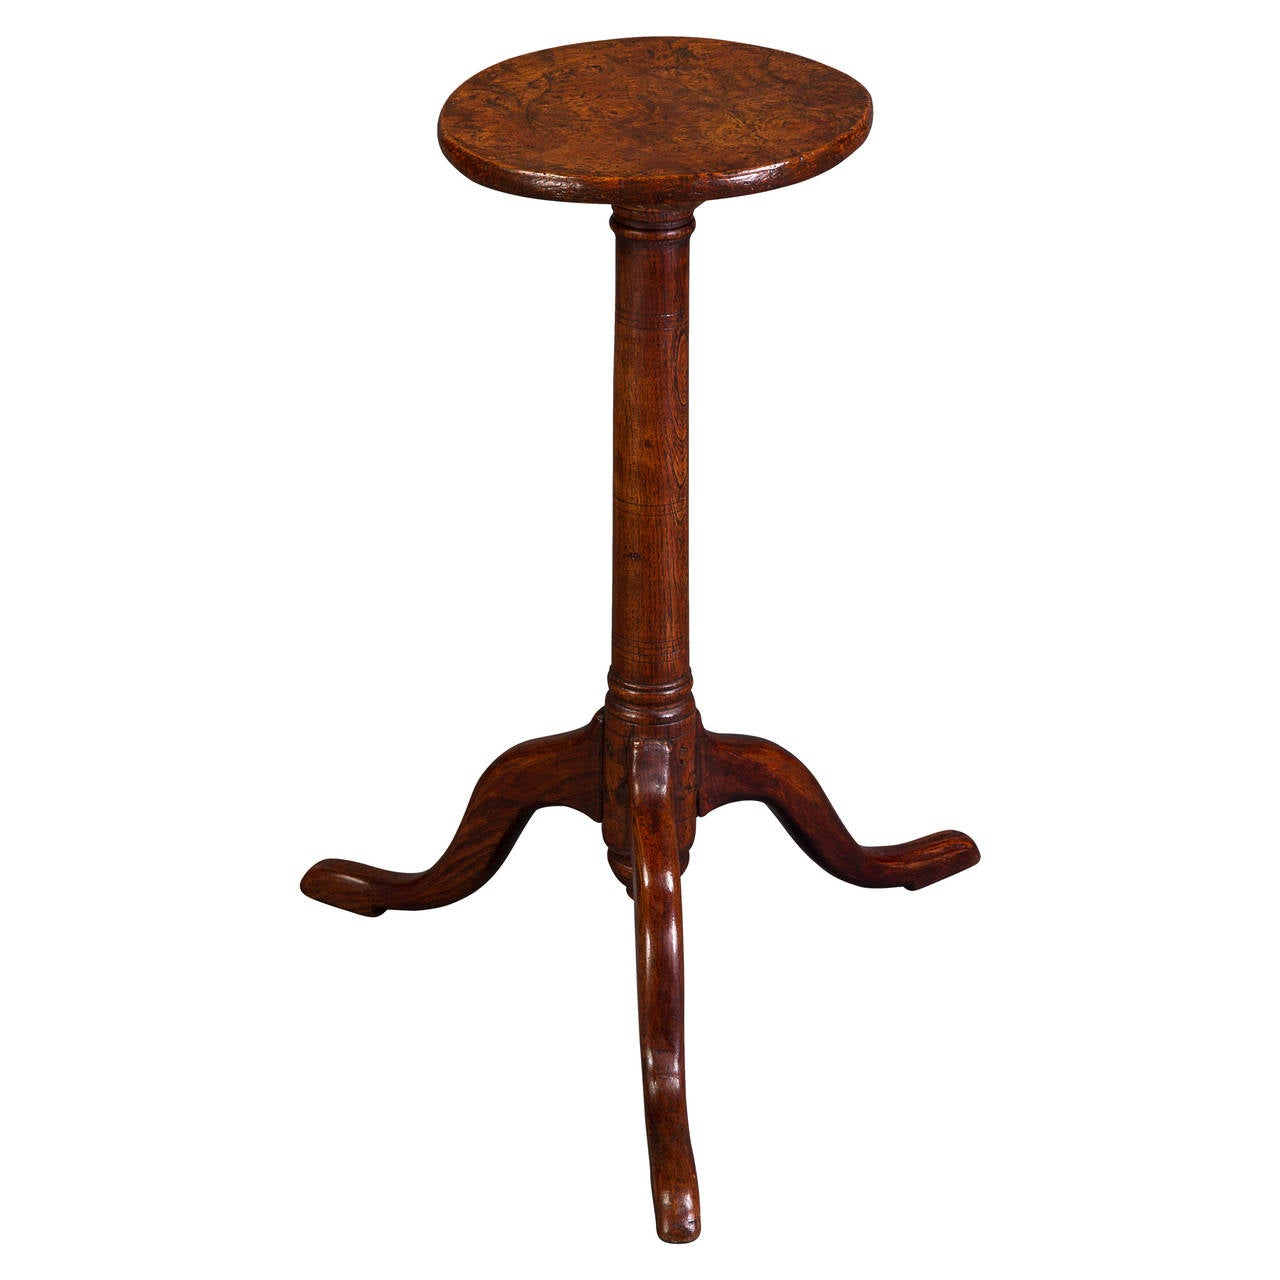 Attractive 19th Century Solid Elm Candle Stand 1